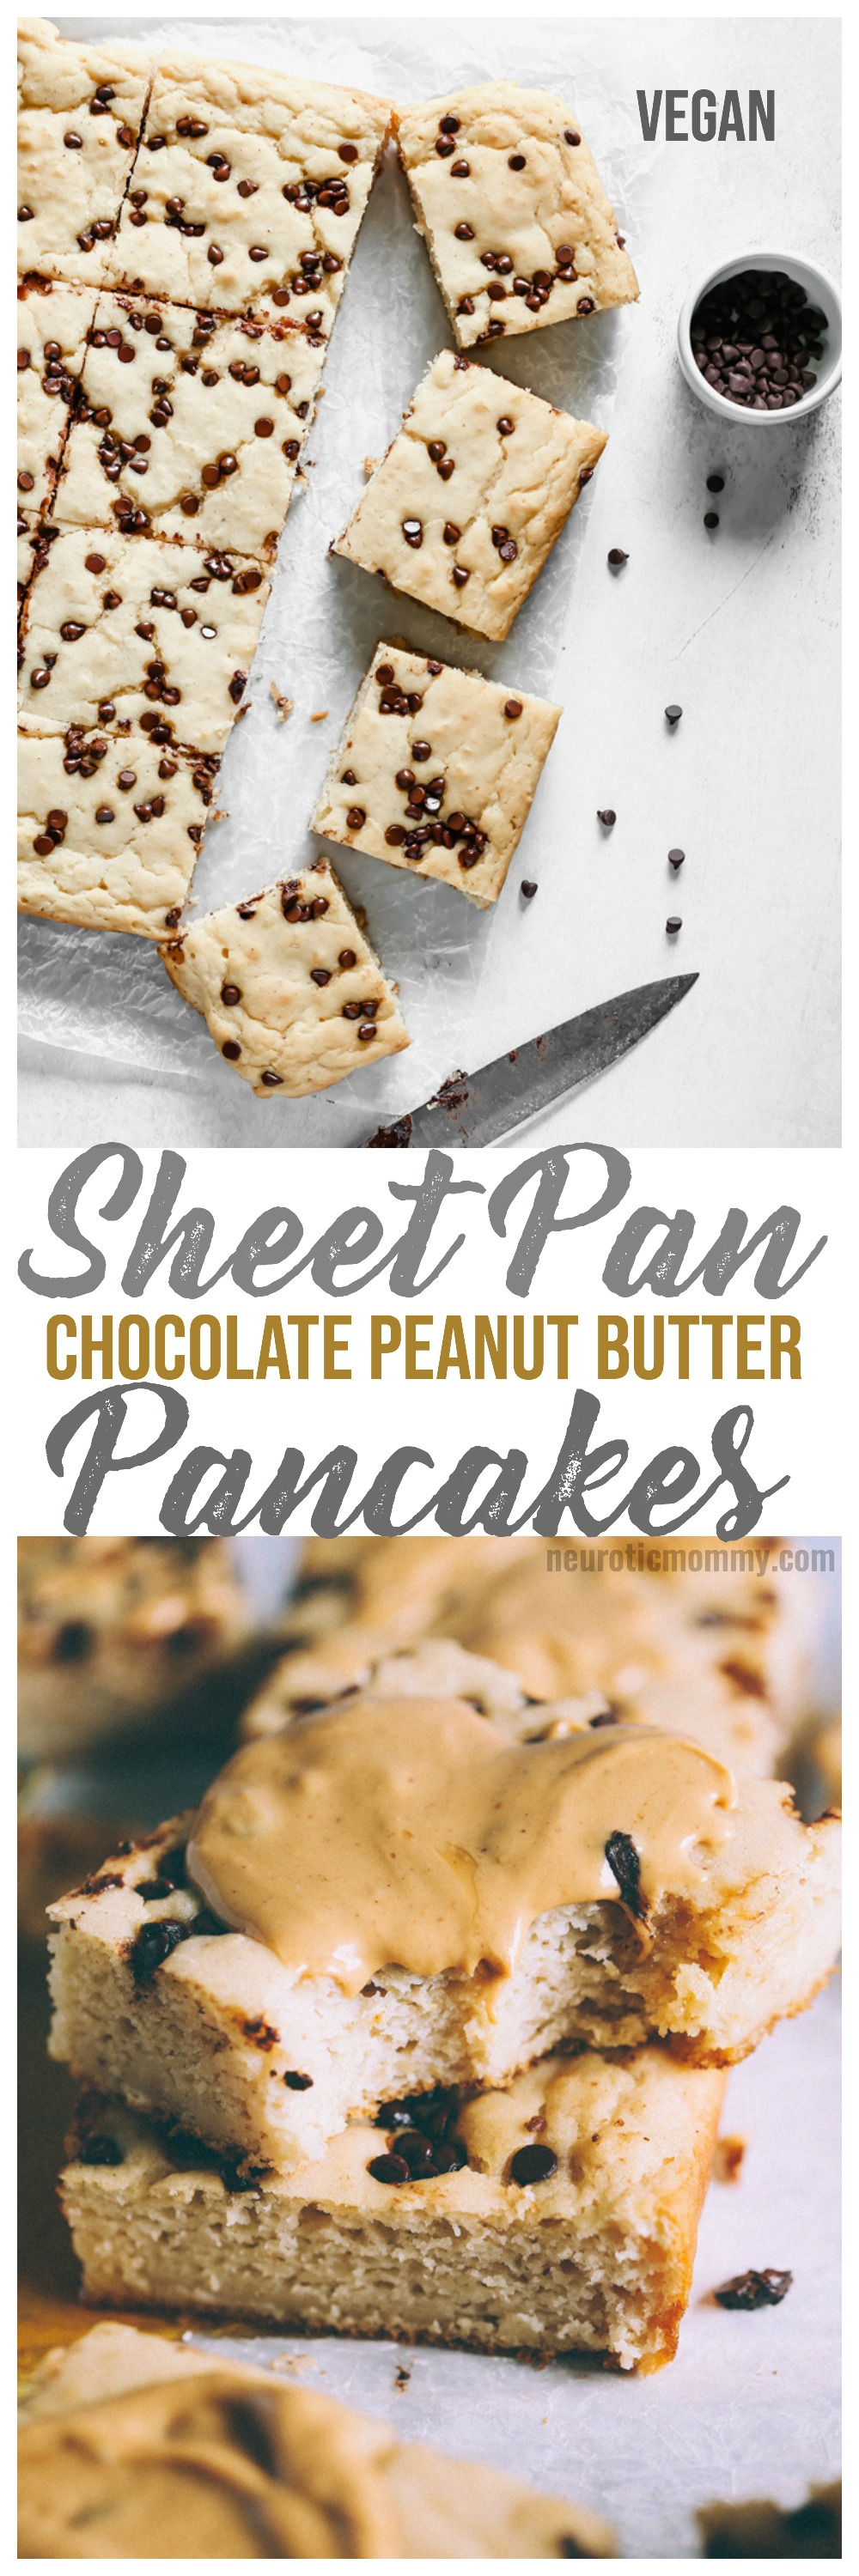 Vegan Sheet Pan Chocolate Peanut Butter Pancakes - Taking breakfast to a whole new level with these decked out pancake bars smothered with vegan white chocolate peanut butter and dazzled with dairy free chocolate chips. NeuroticMommy.com #vegan #pancakes #sheetpan